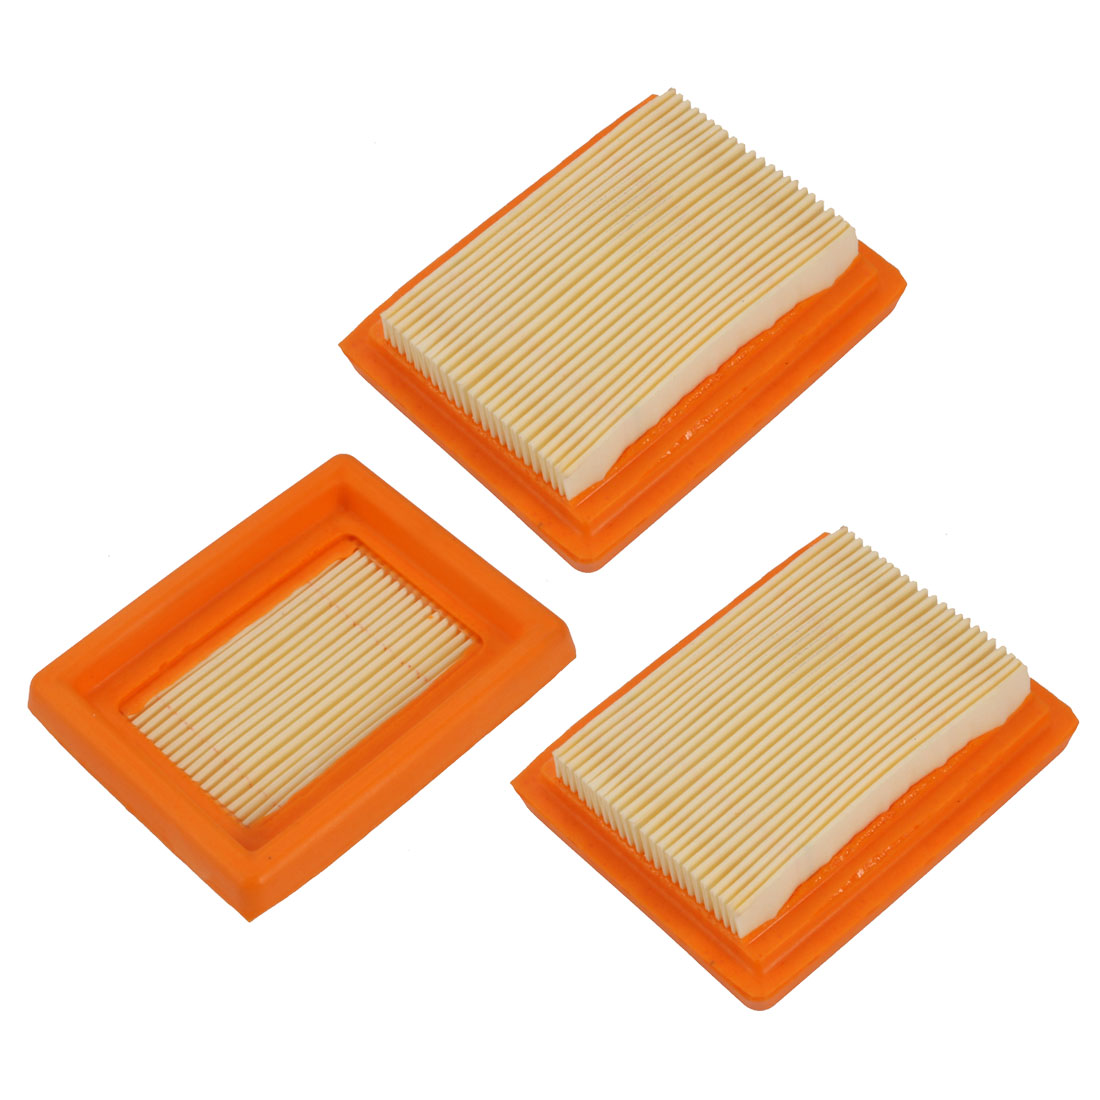 3pcs Extra Guard Panel Engine Air Filter Cleaner Accessories for 17211-KRE-900